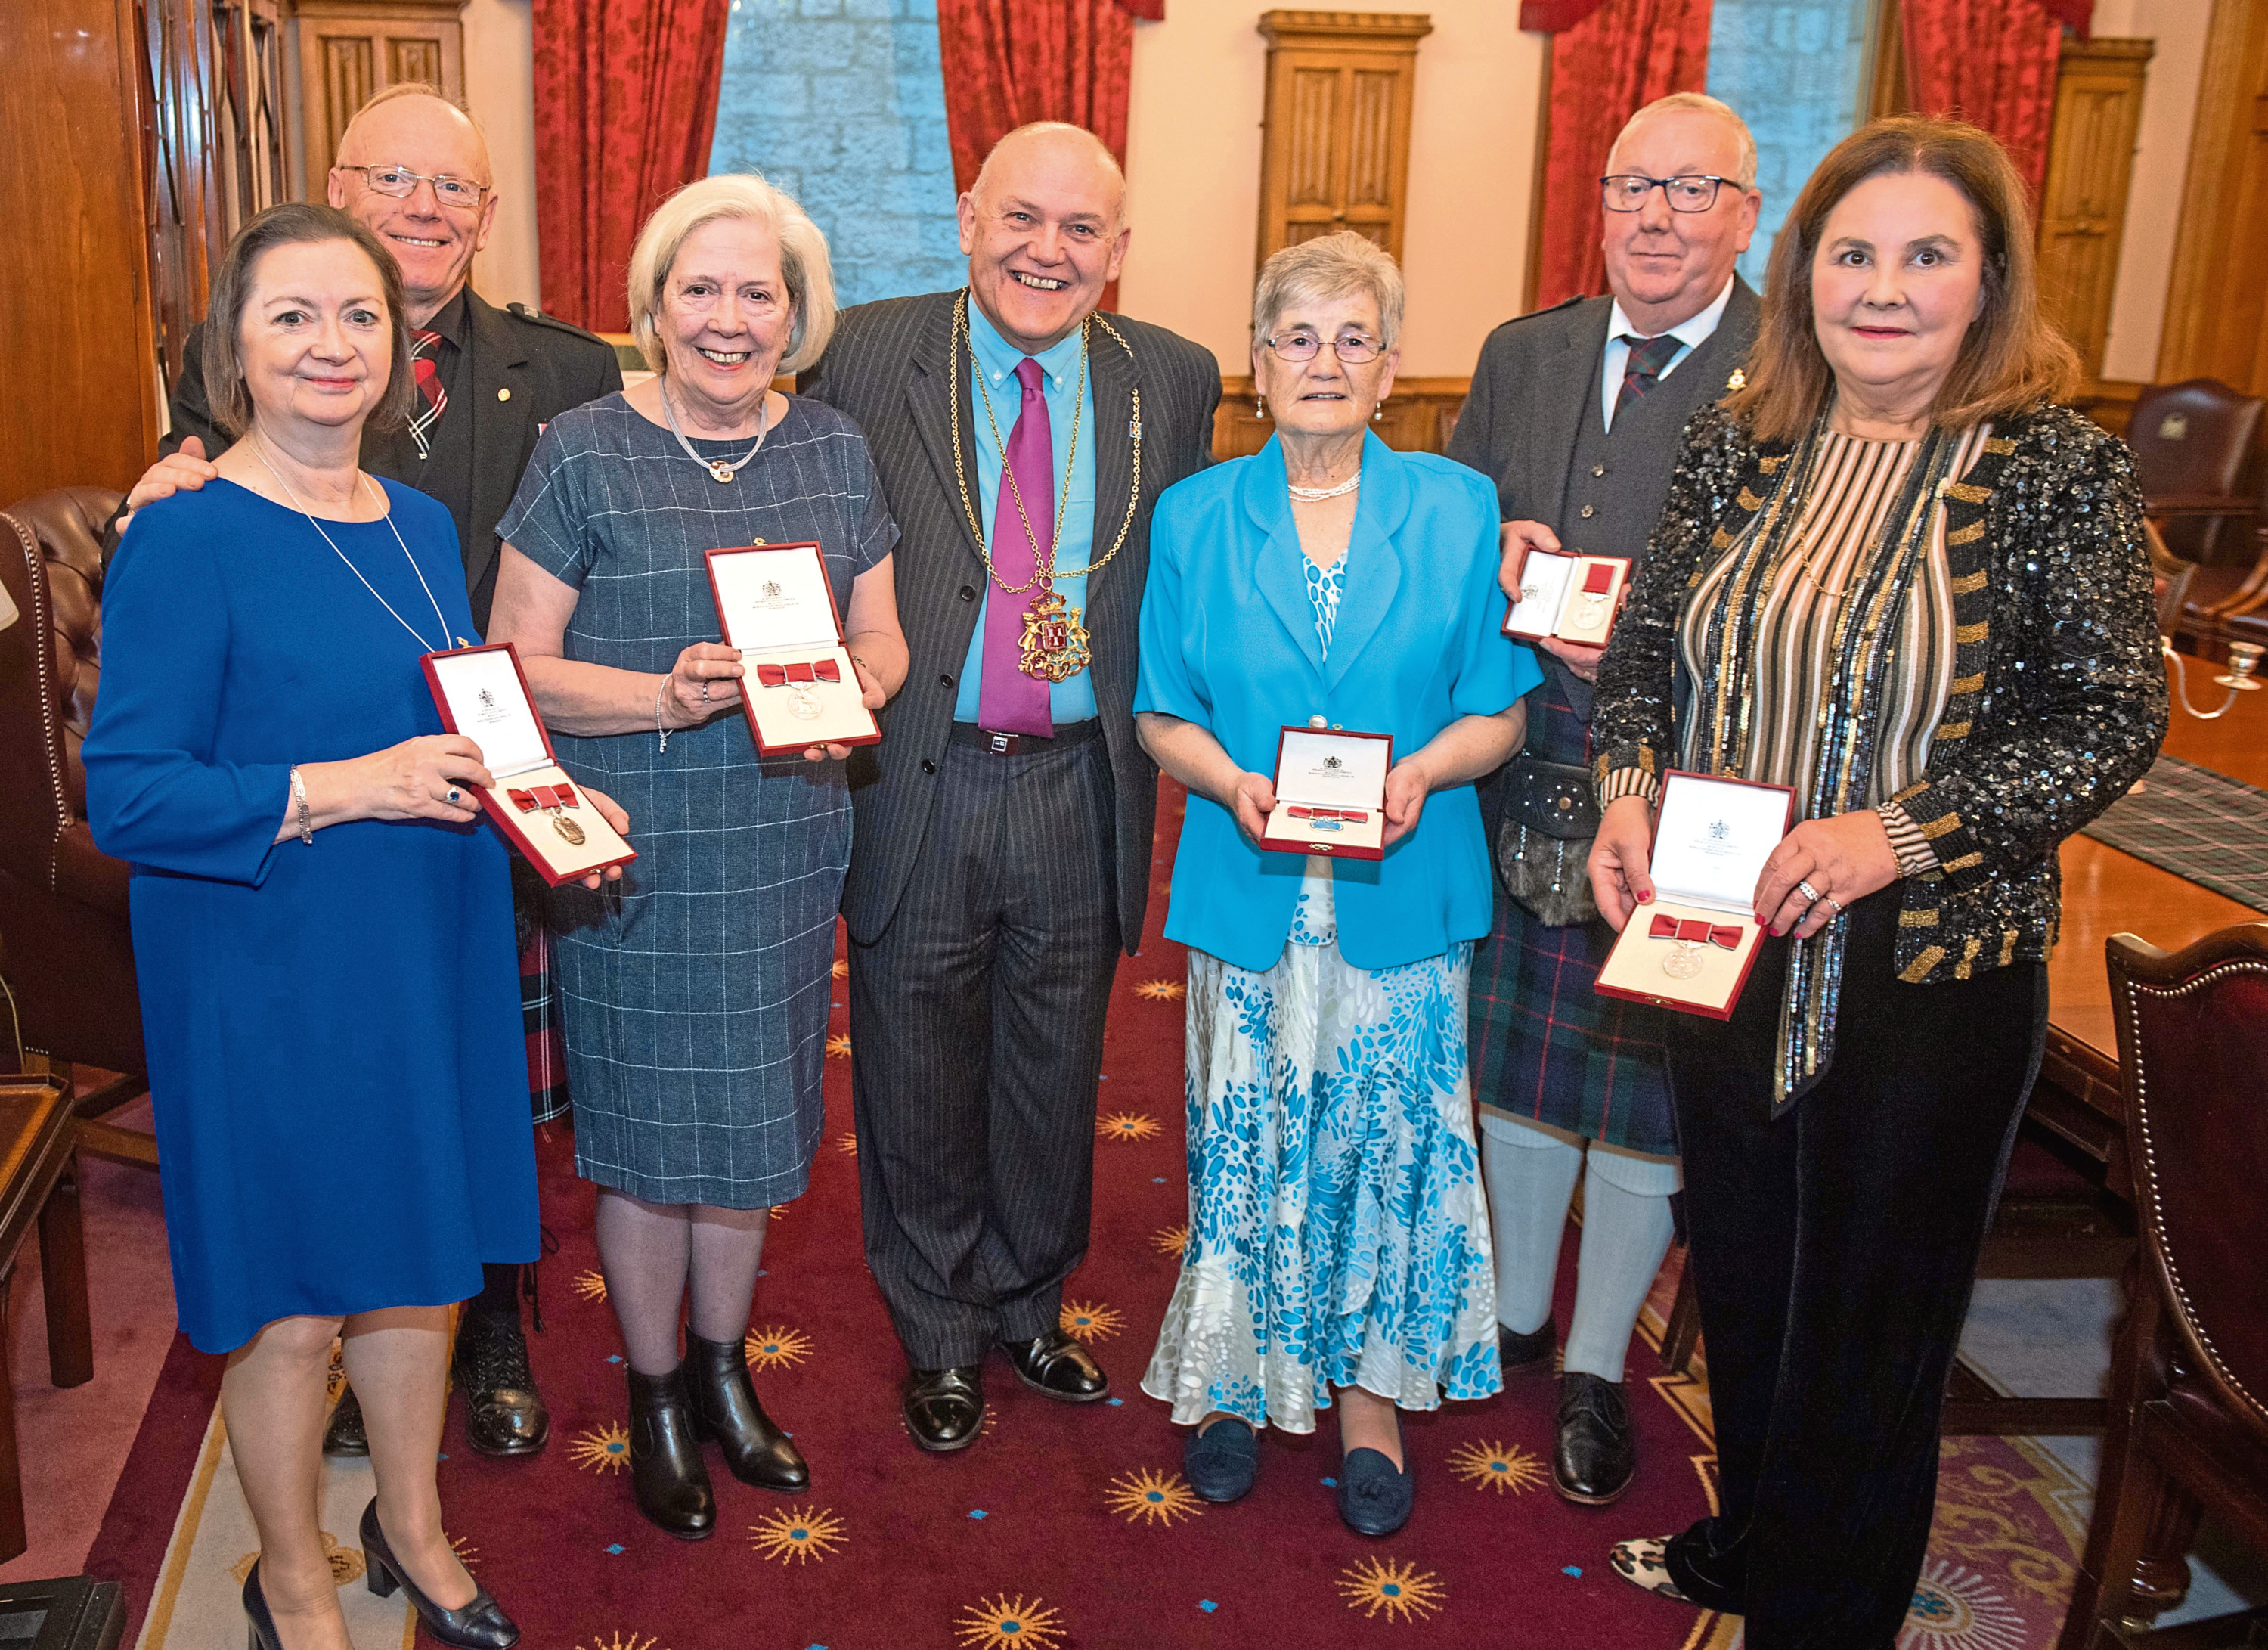 Pictured from left, Clare Haggart, Charles Bain, Elizabeth Milne, Lord Lieutenant Barney Crockett, Hazel McAllan, David Murray and Helena Anderson-Wright with their medals